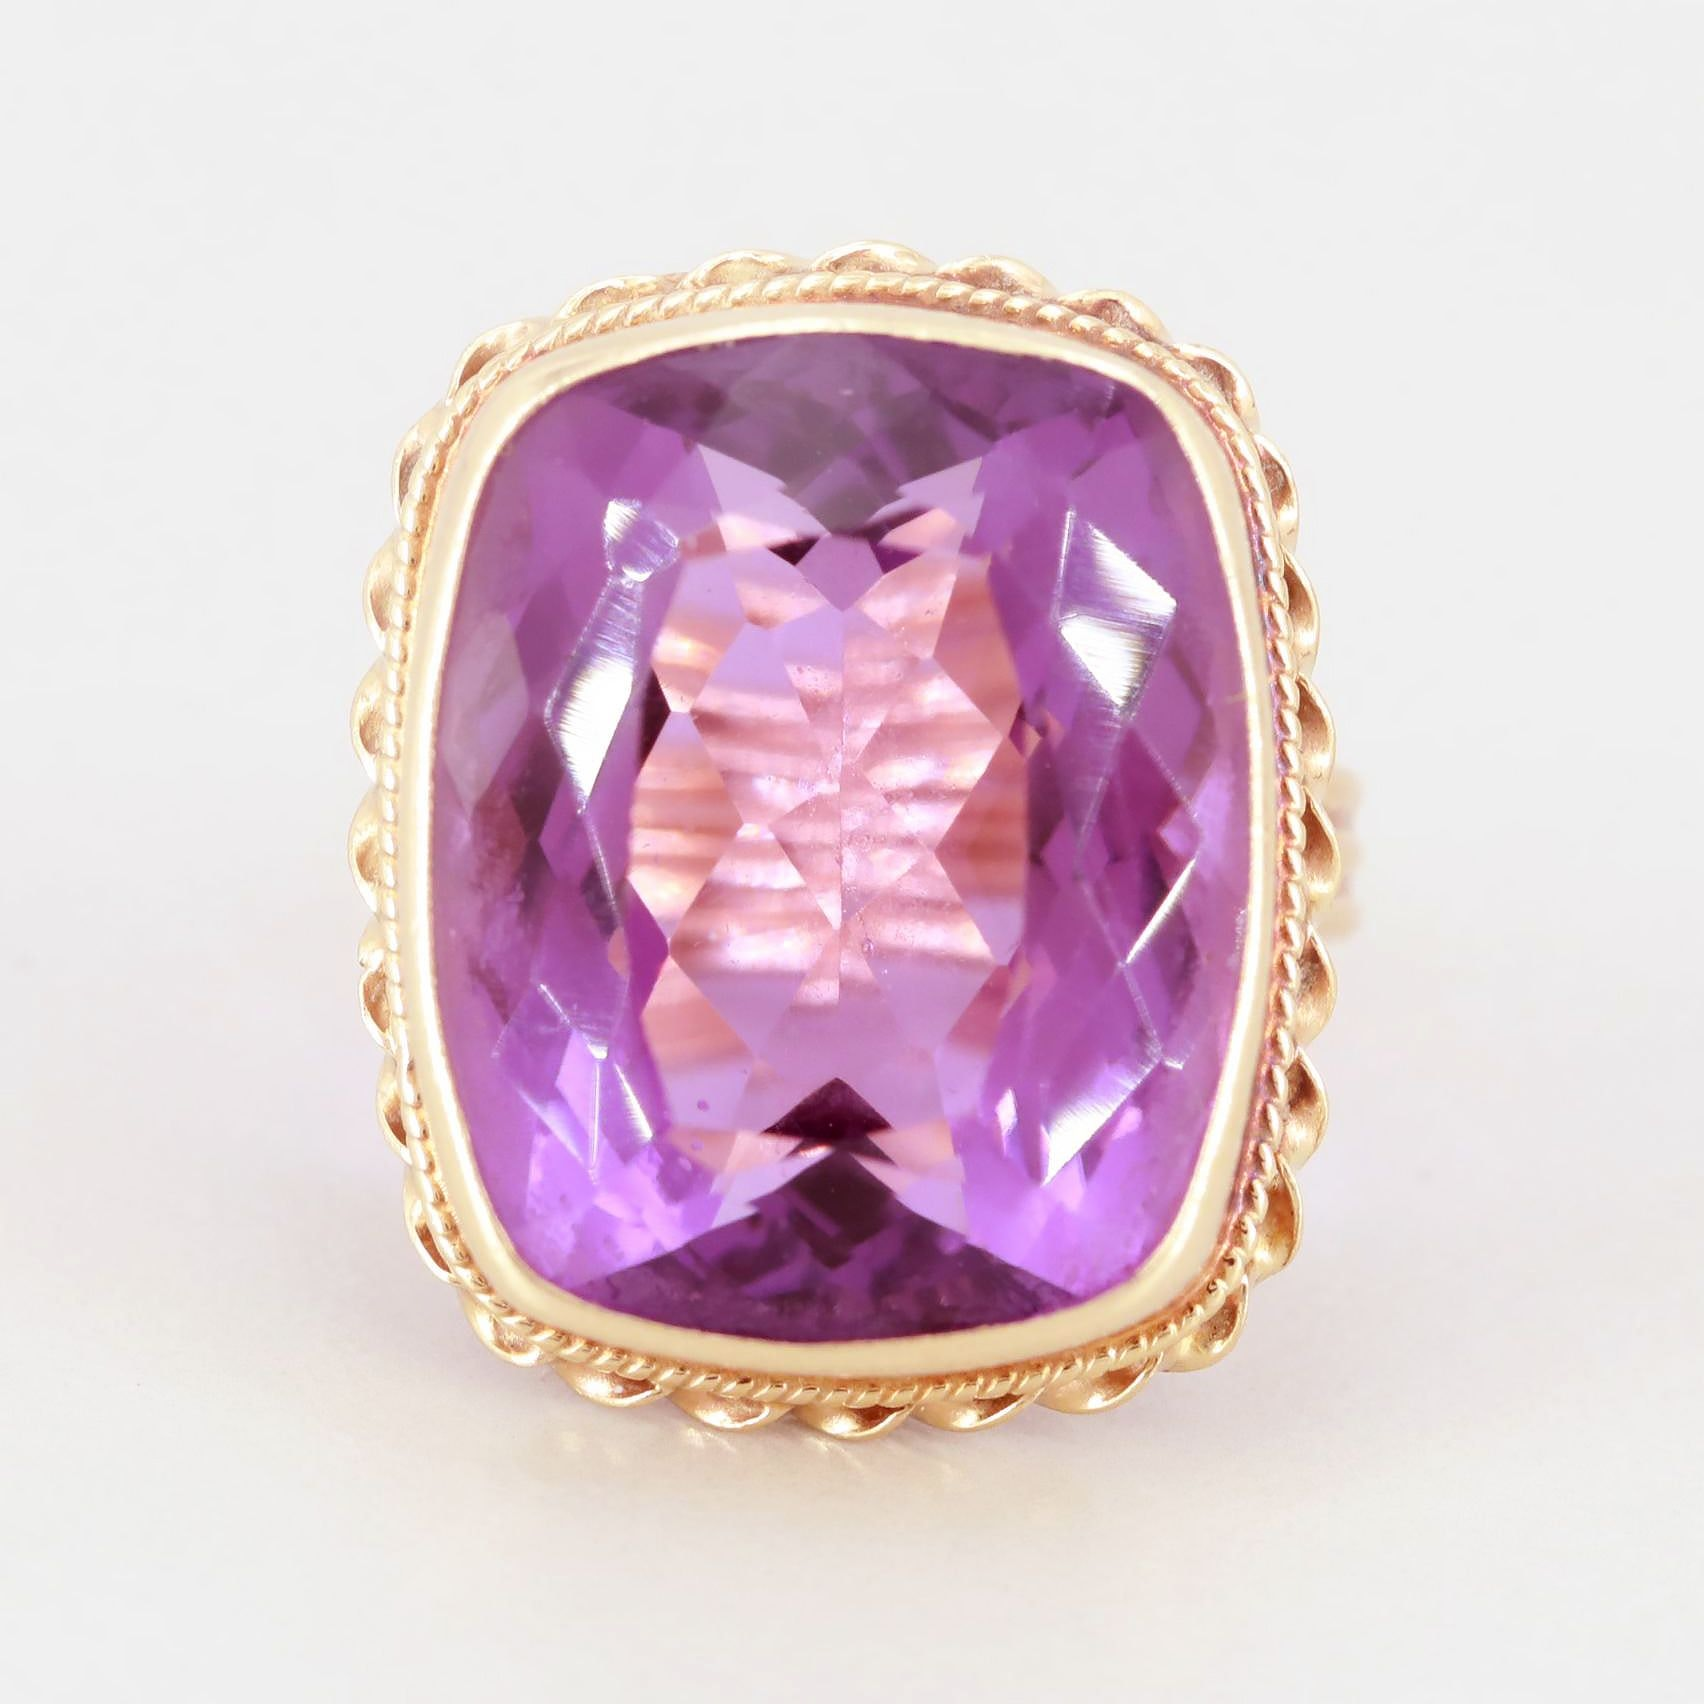 Vintage 14K Yellow Gold 19.00 CT Amethyst Ring